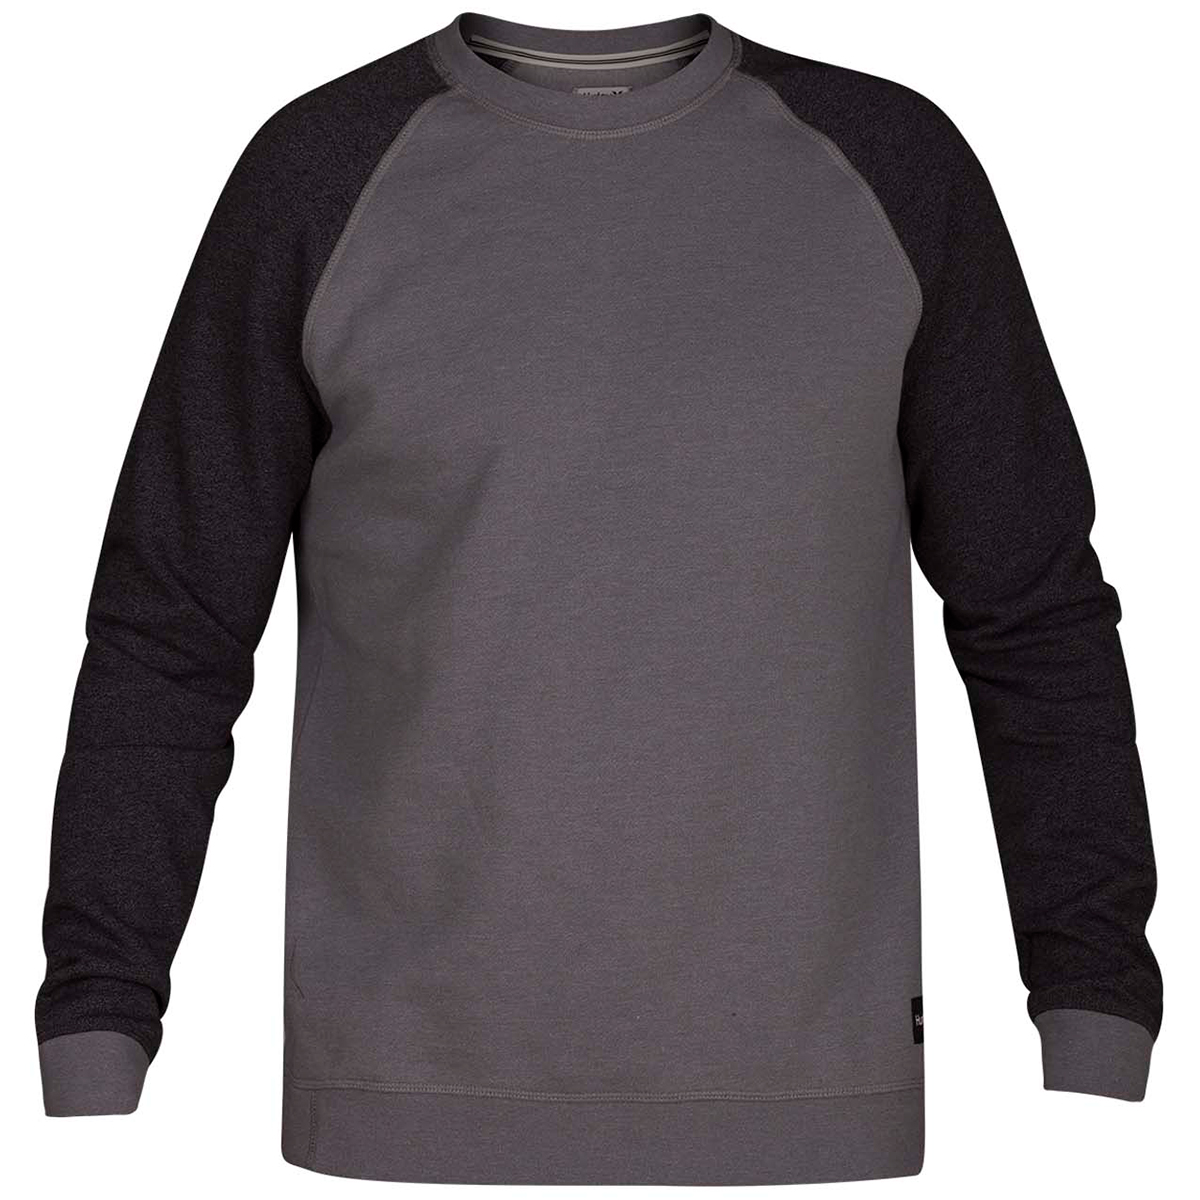 Hurley Guys' Crone Crew Long-Sleeve Fleece Pullover - Black, XL